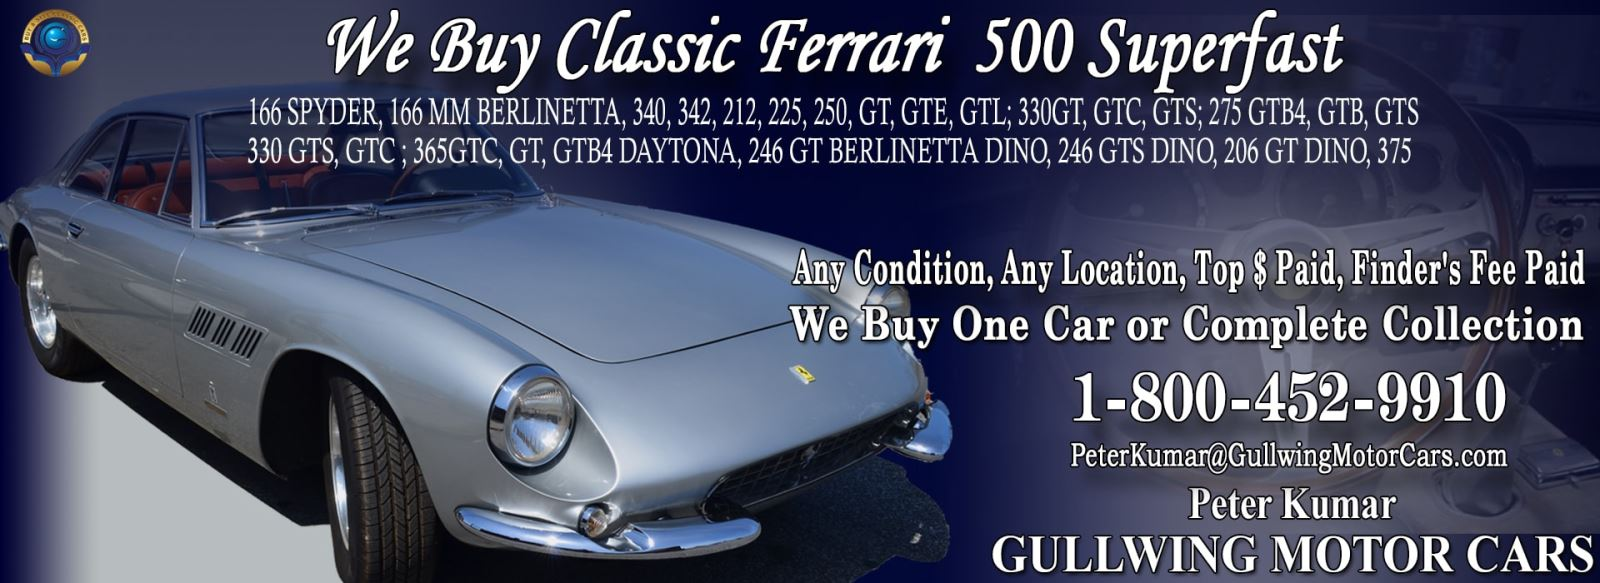 Classic Ferrari 500 Superfast for sale, we buy vintage Ferrari 500 Superfast. Call Peter Kumar. Gullwing Motor